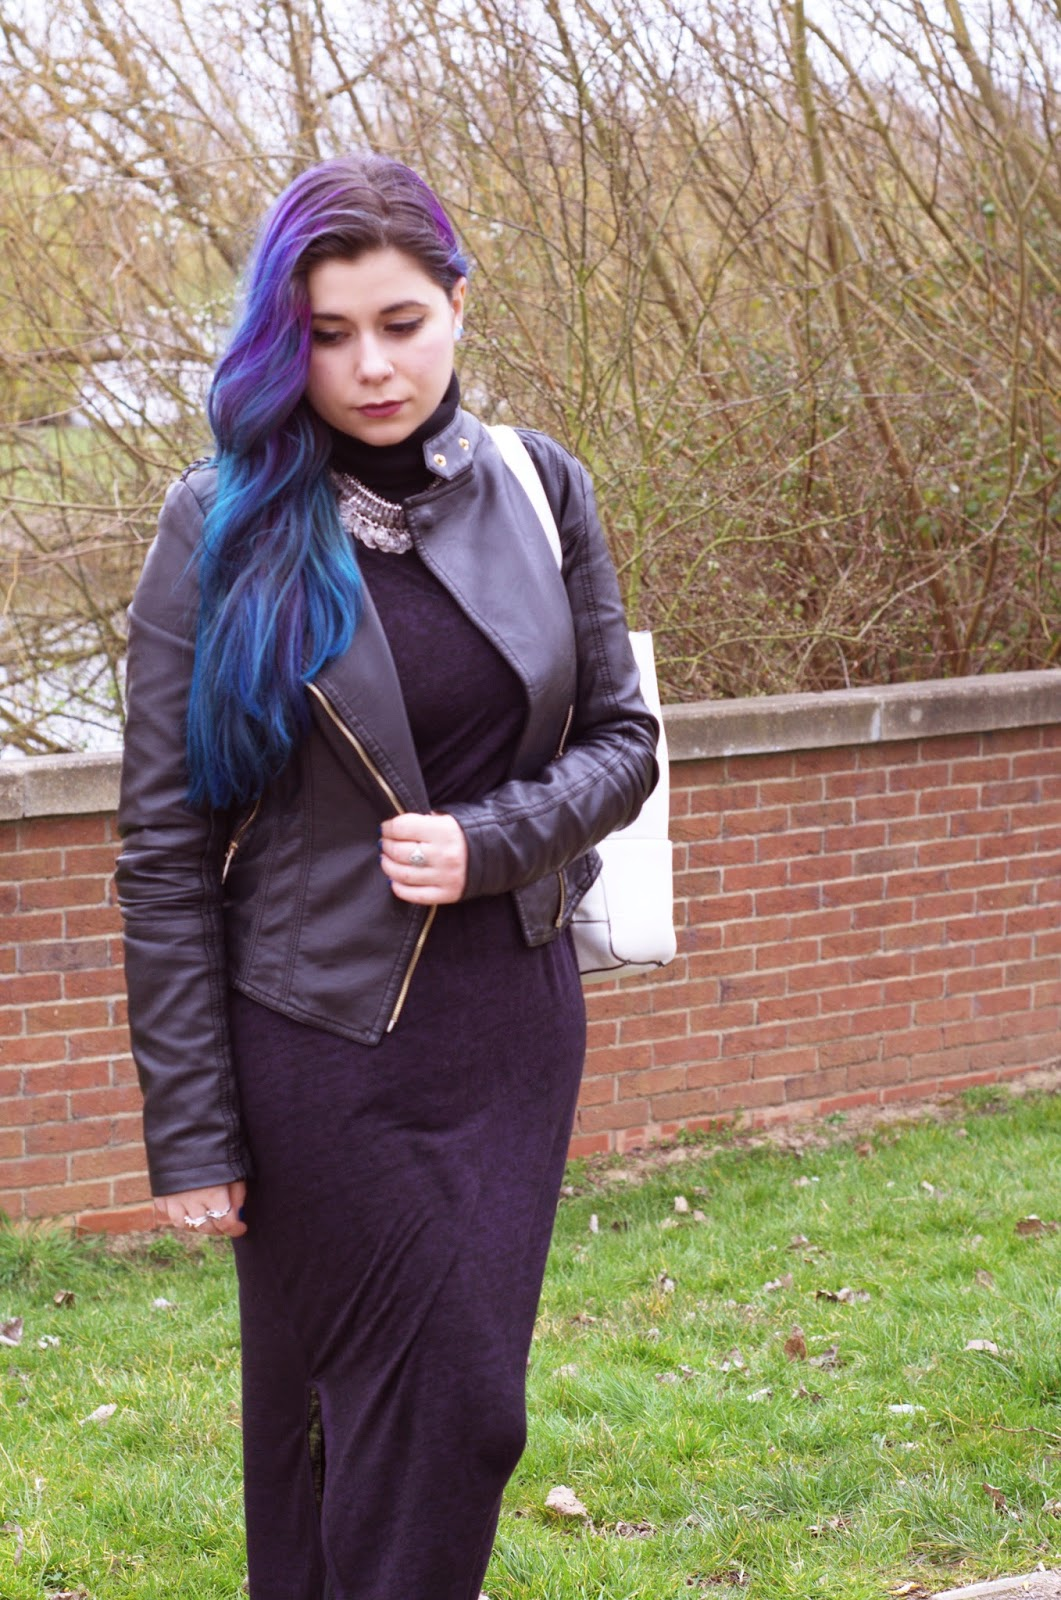 Maxi Dress High Neck Grunge OOTD